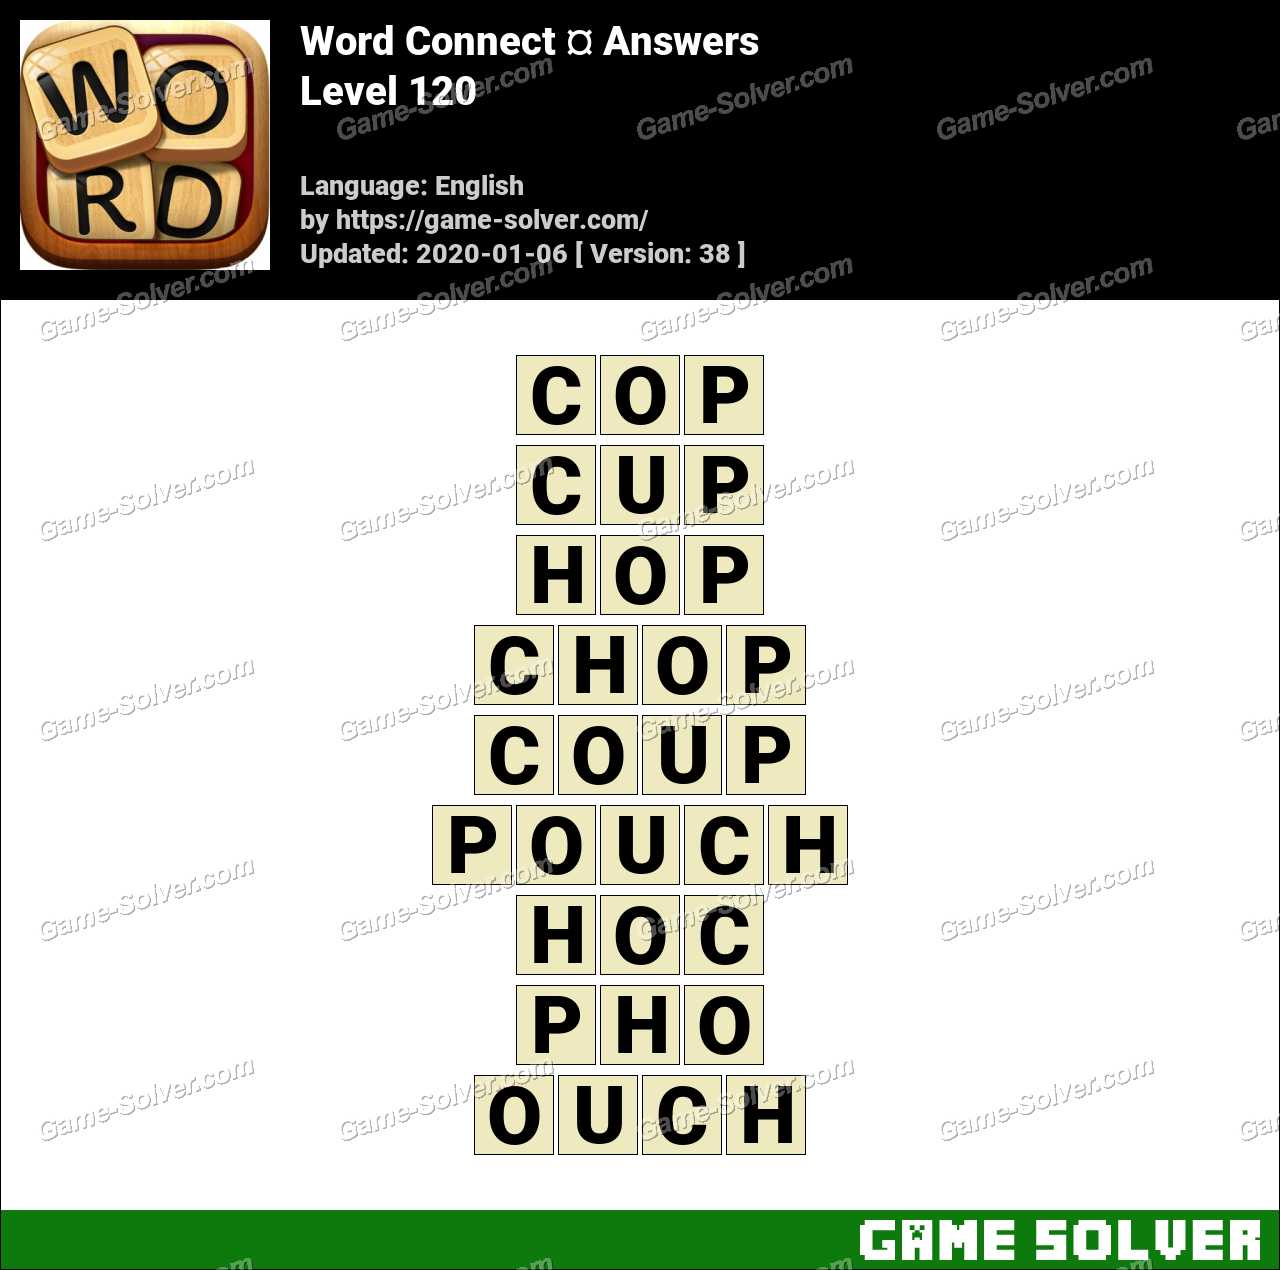 Word Connect Level 120 Answers